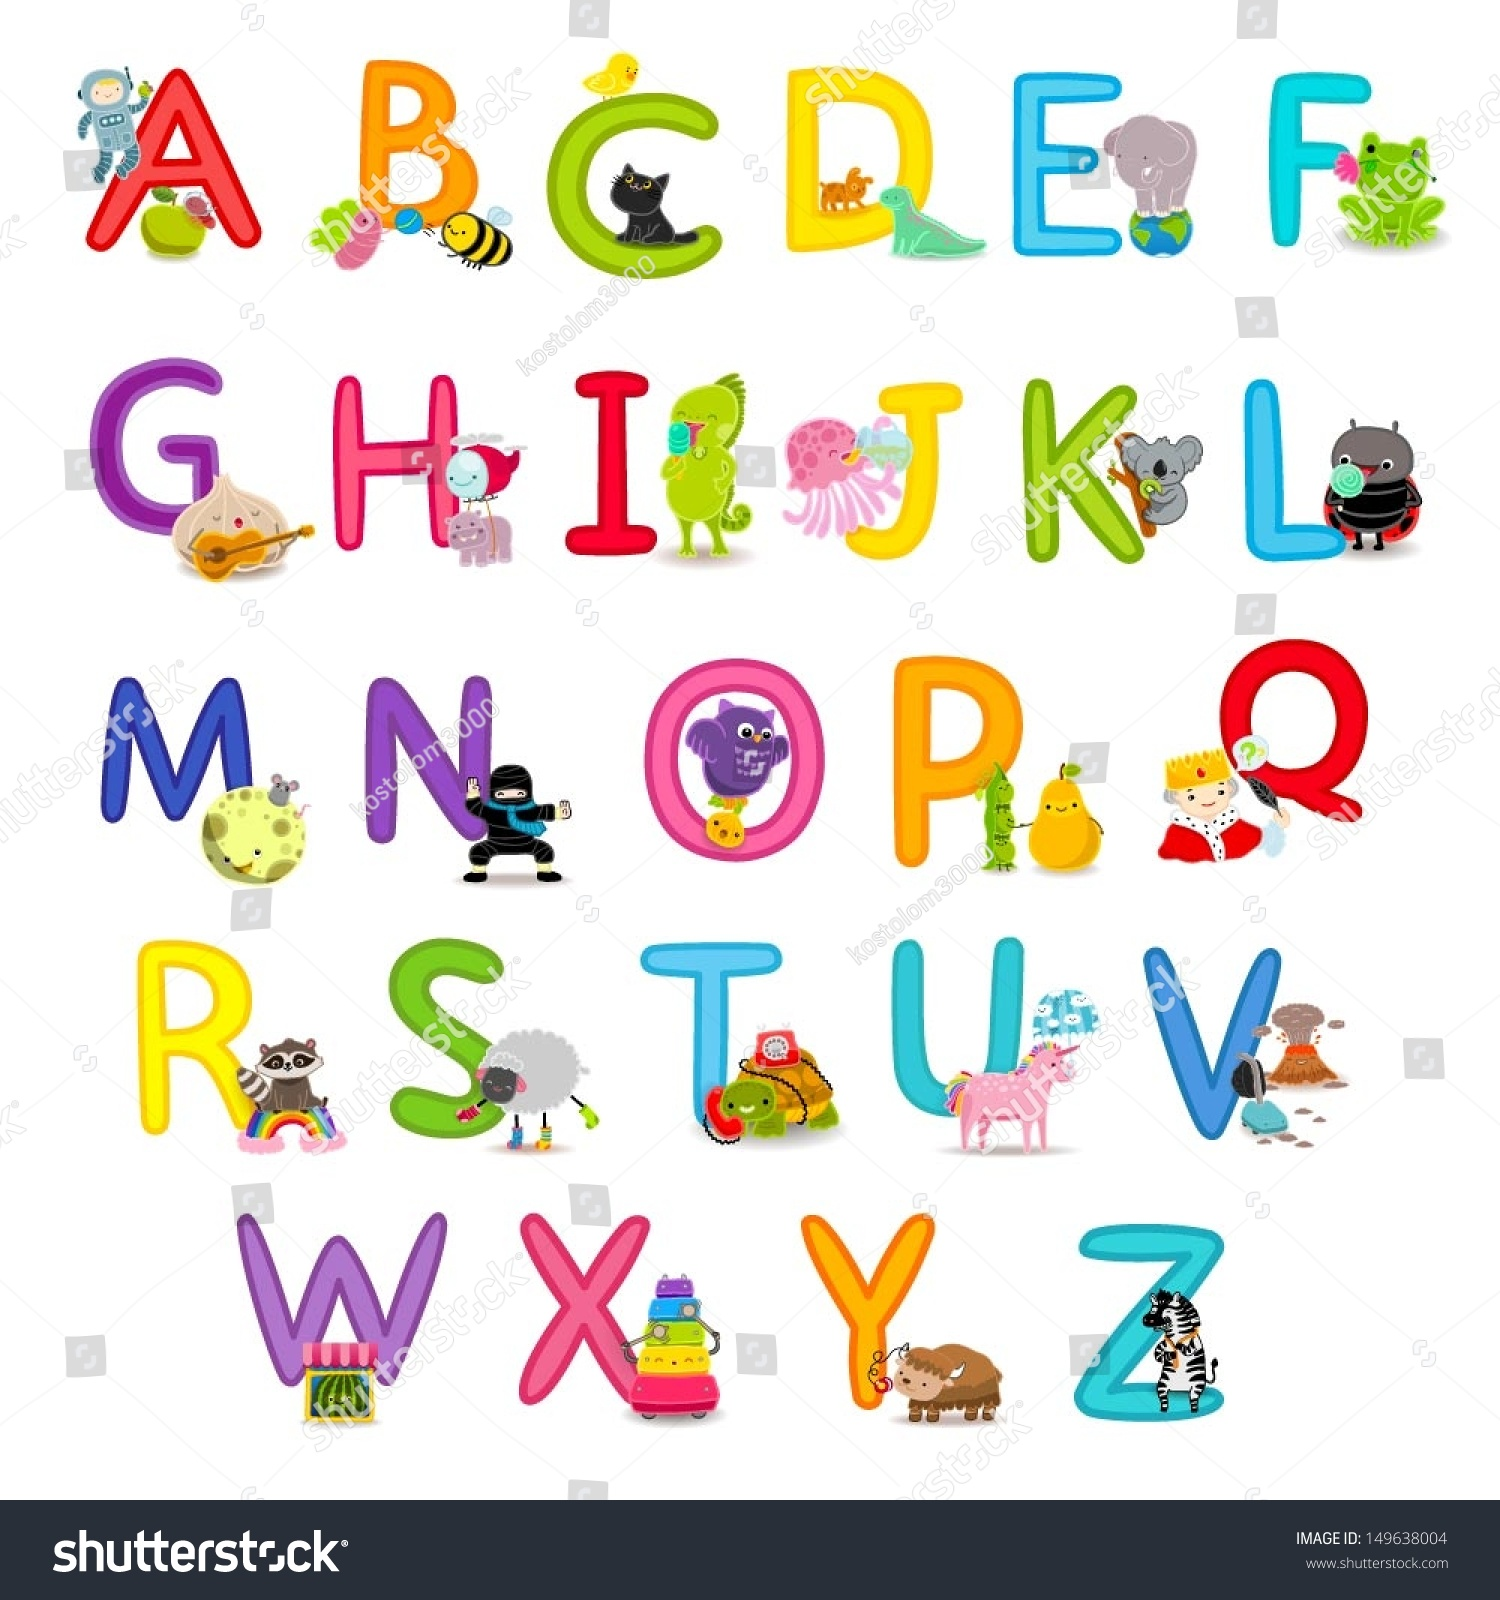 Kitchen Poster Food As Alphabet With Food Name: Cute Childrens English Alphabet Fun Cartoon Stock Vector